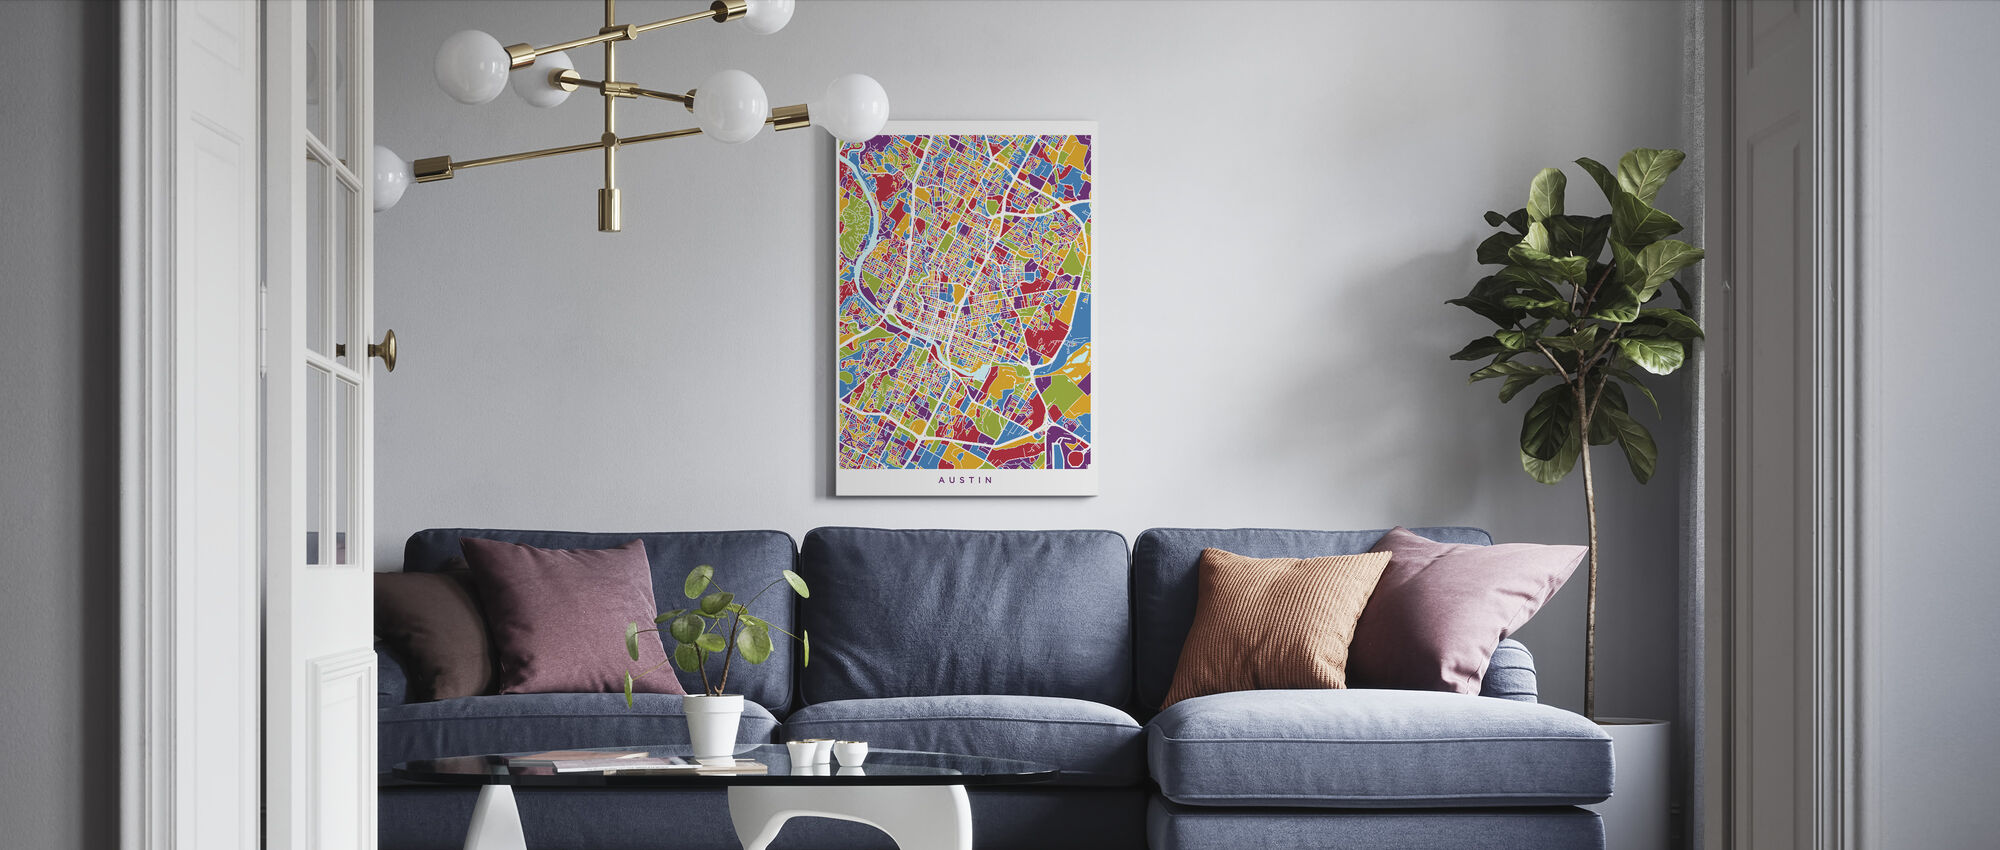 Austin Texas City Map - Canvas print - Living Room